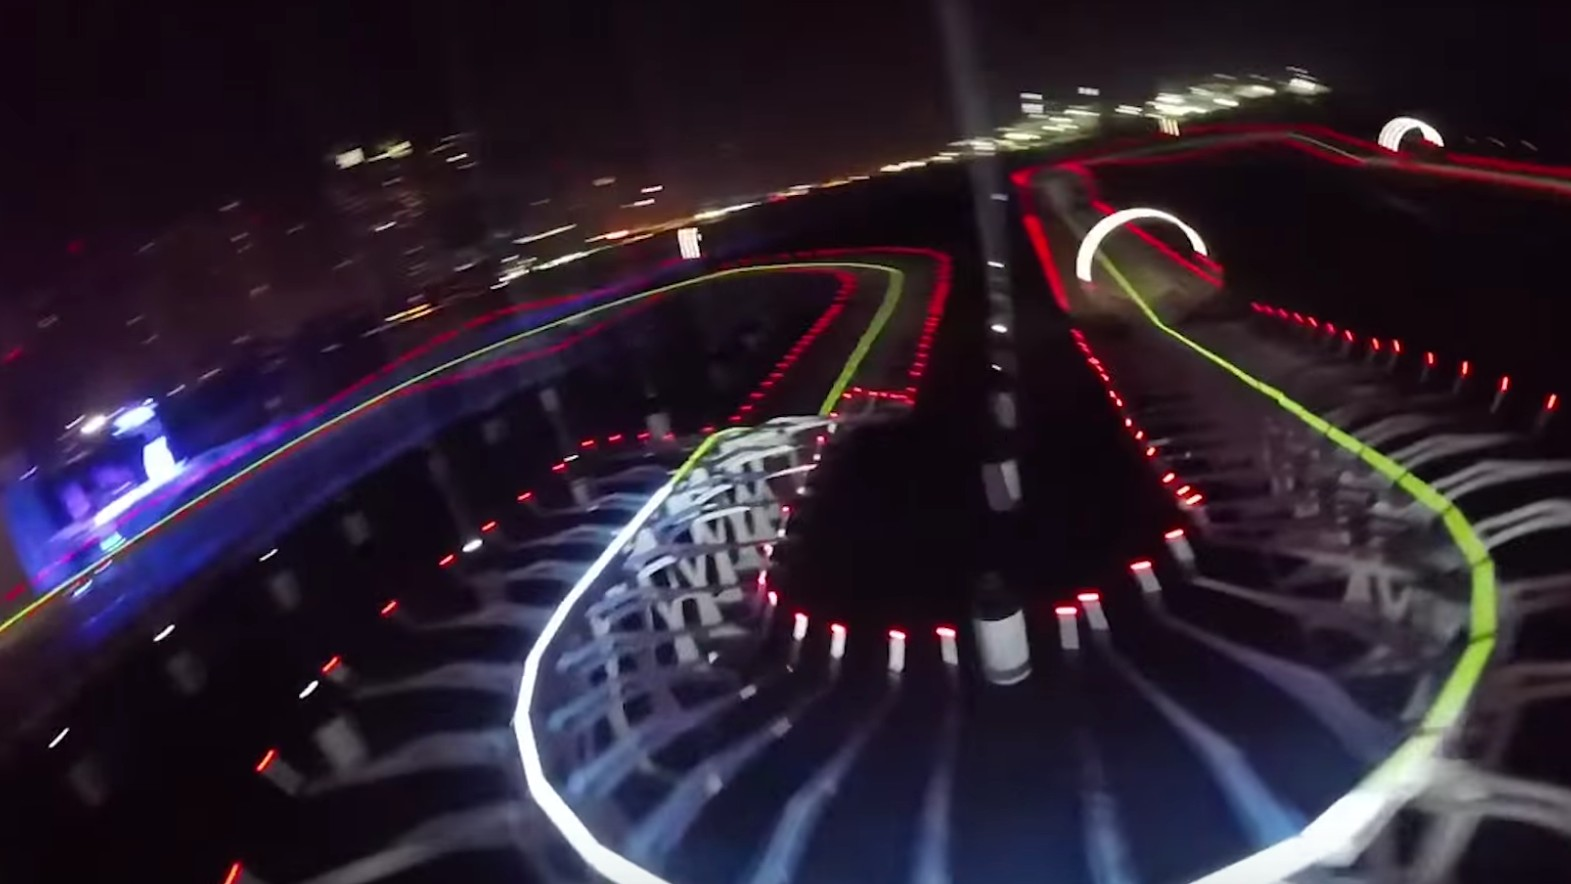 A Look At the Swankiest, Priciest Drone Race Yet